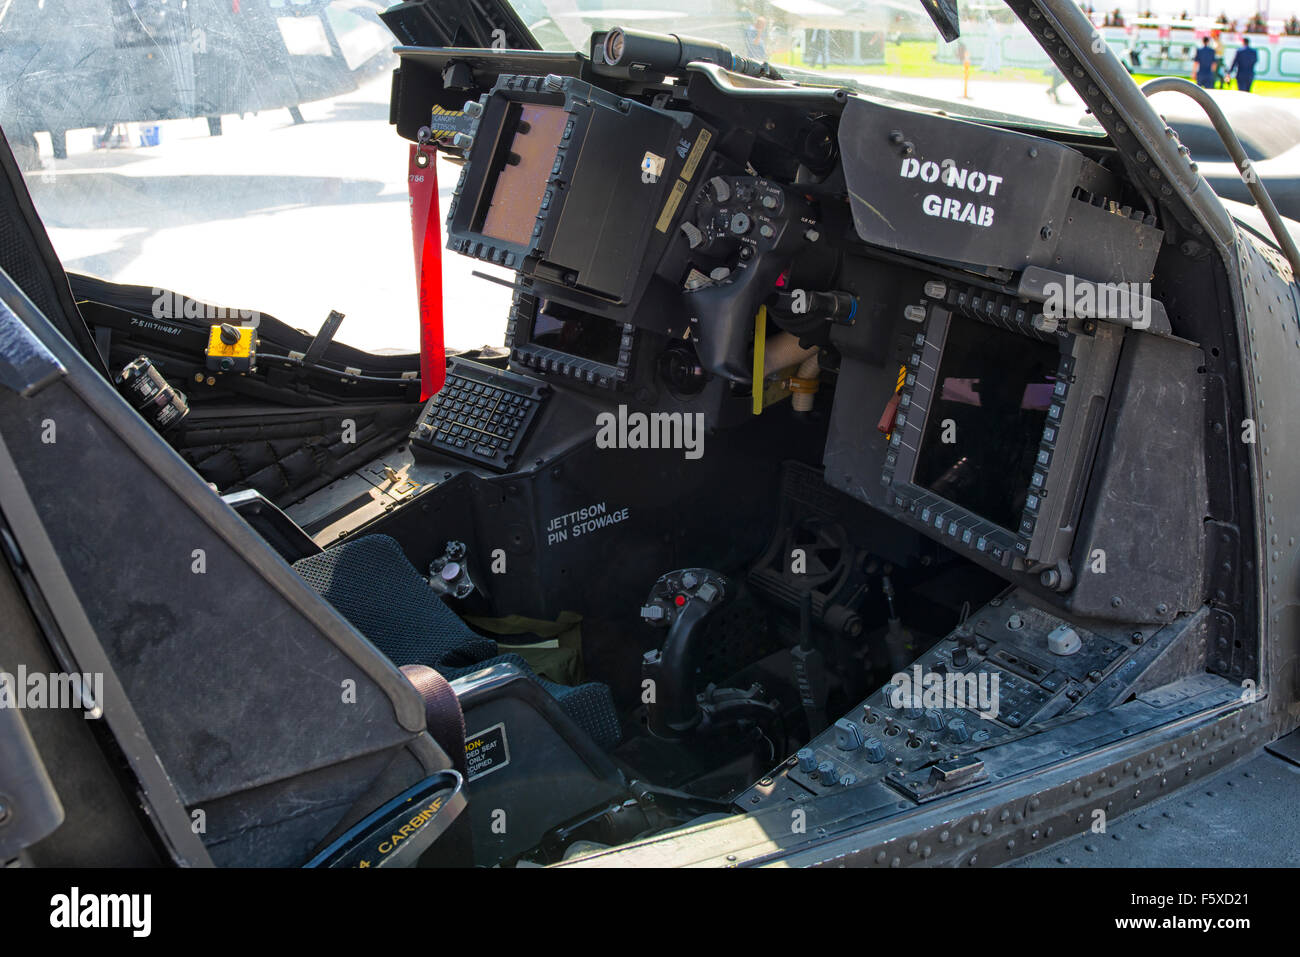 military helicopter helmet with Stock Photo Ah 64 Apache Helicopter Cockpit At Dubai Air Show 2015 In Dubai Uae 89706121 on The M60 Machine Gun And They Called It The Pig additionally Viewtopic as well M60 Machine Gun additionally Arma 3 Free Download besides Army unveils light utility helicopter uh 72a lakota.